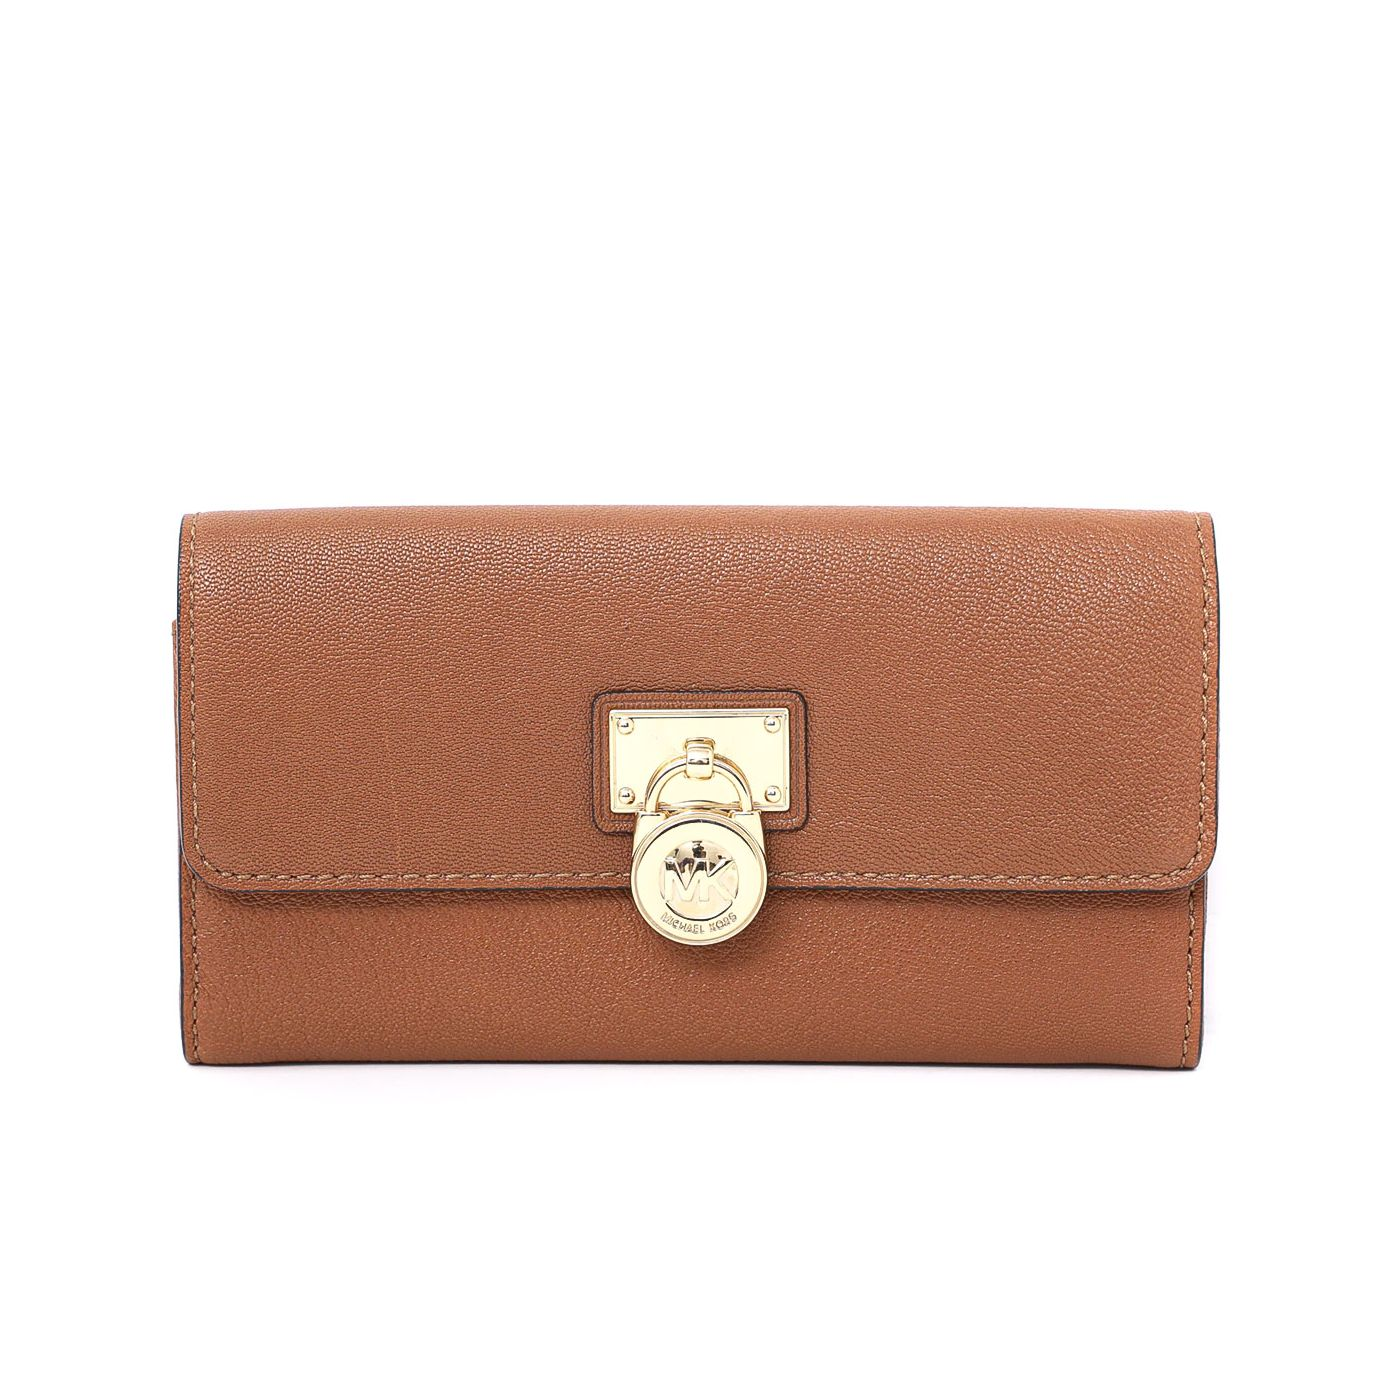 Michael Kors Brown Hamilton Wallet